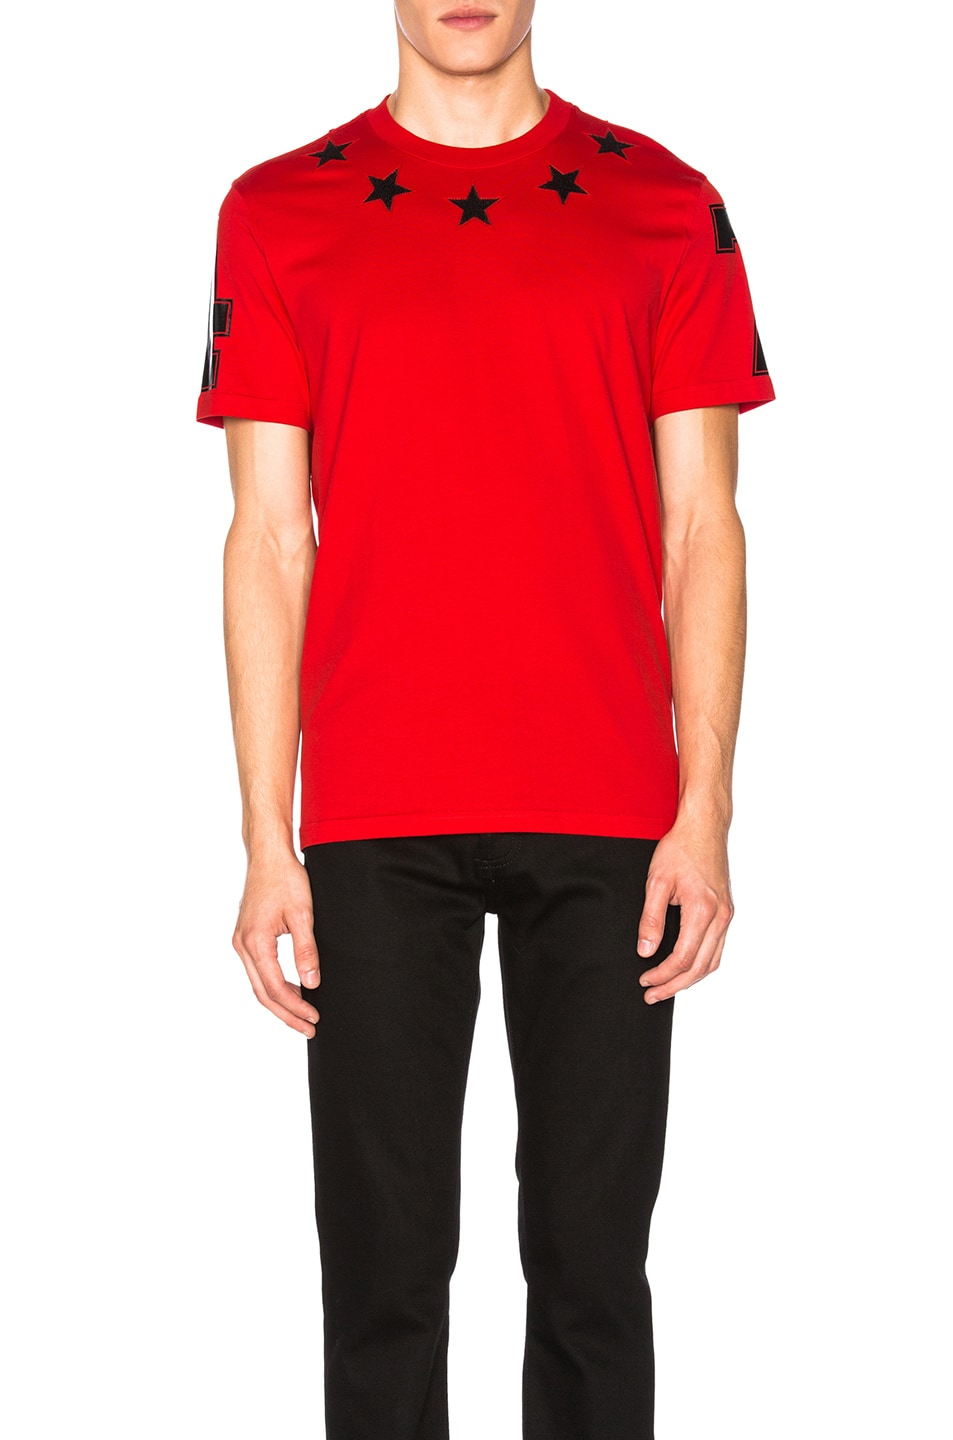 Image 1 of Givenchy Star Collar Tee in Red ebd25942e7c7